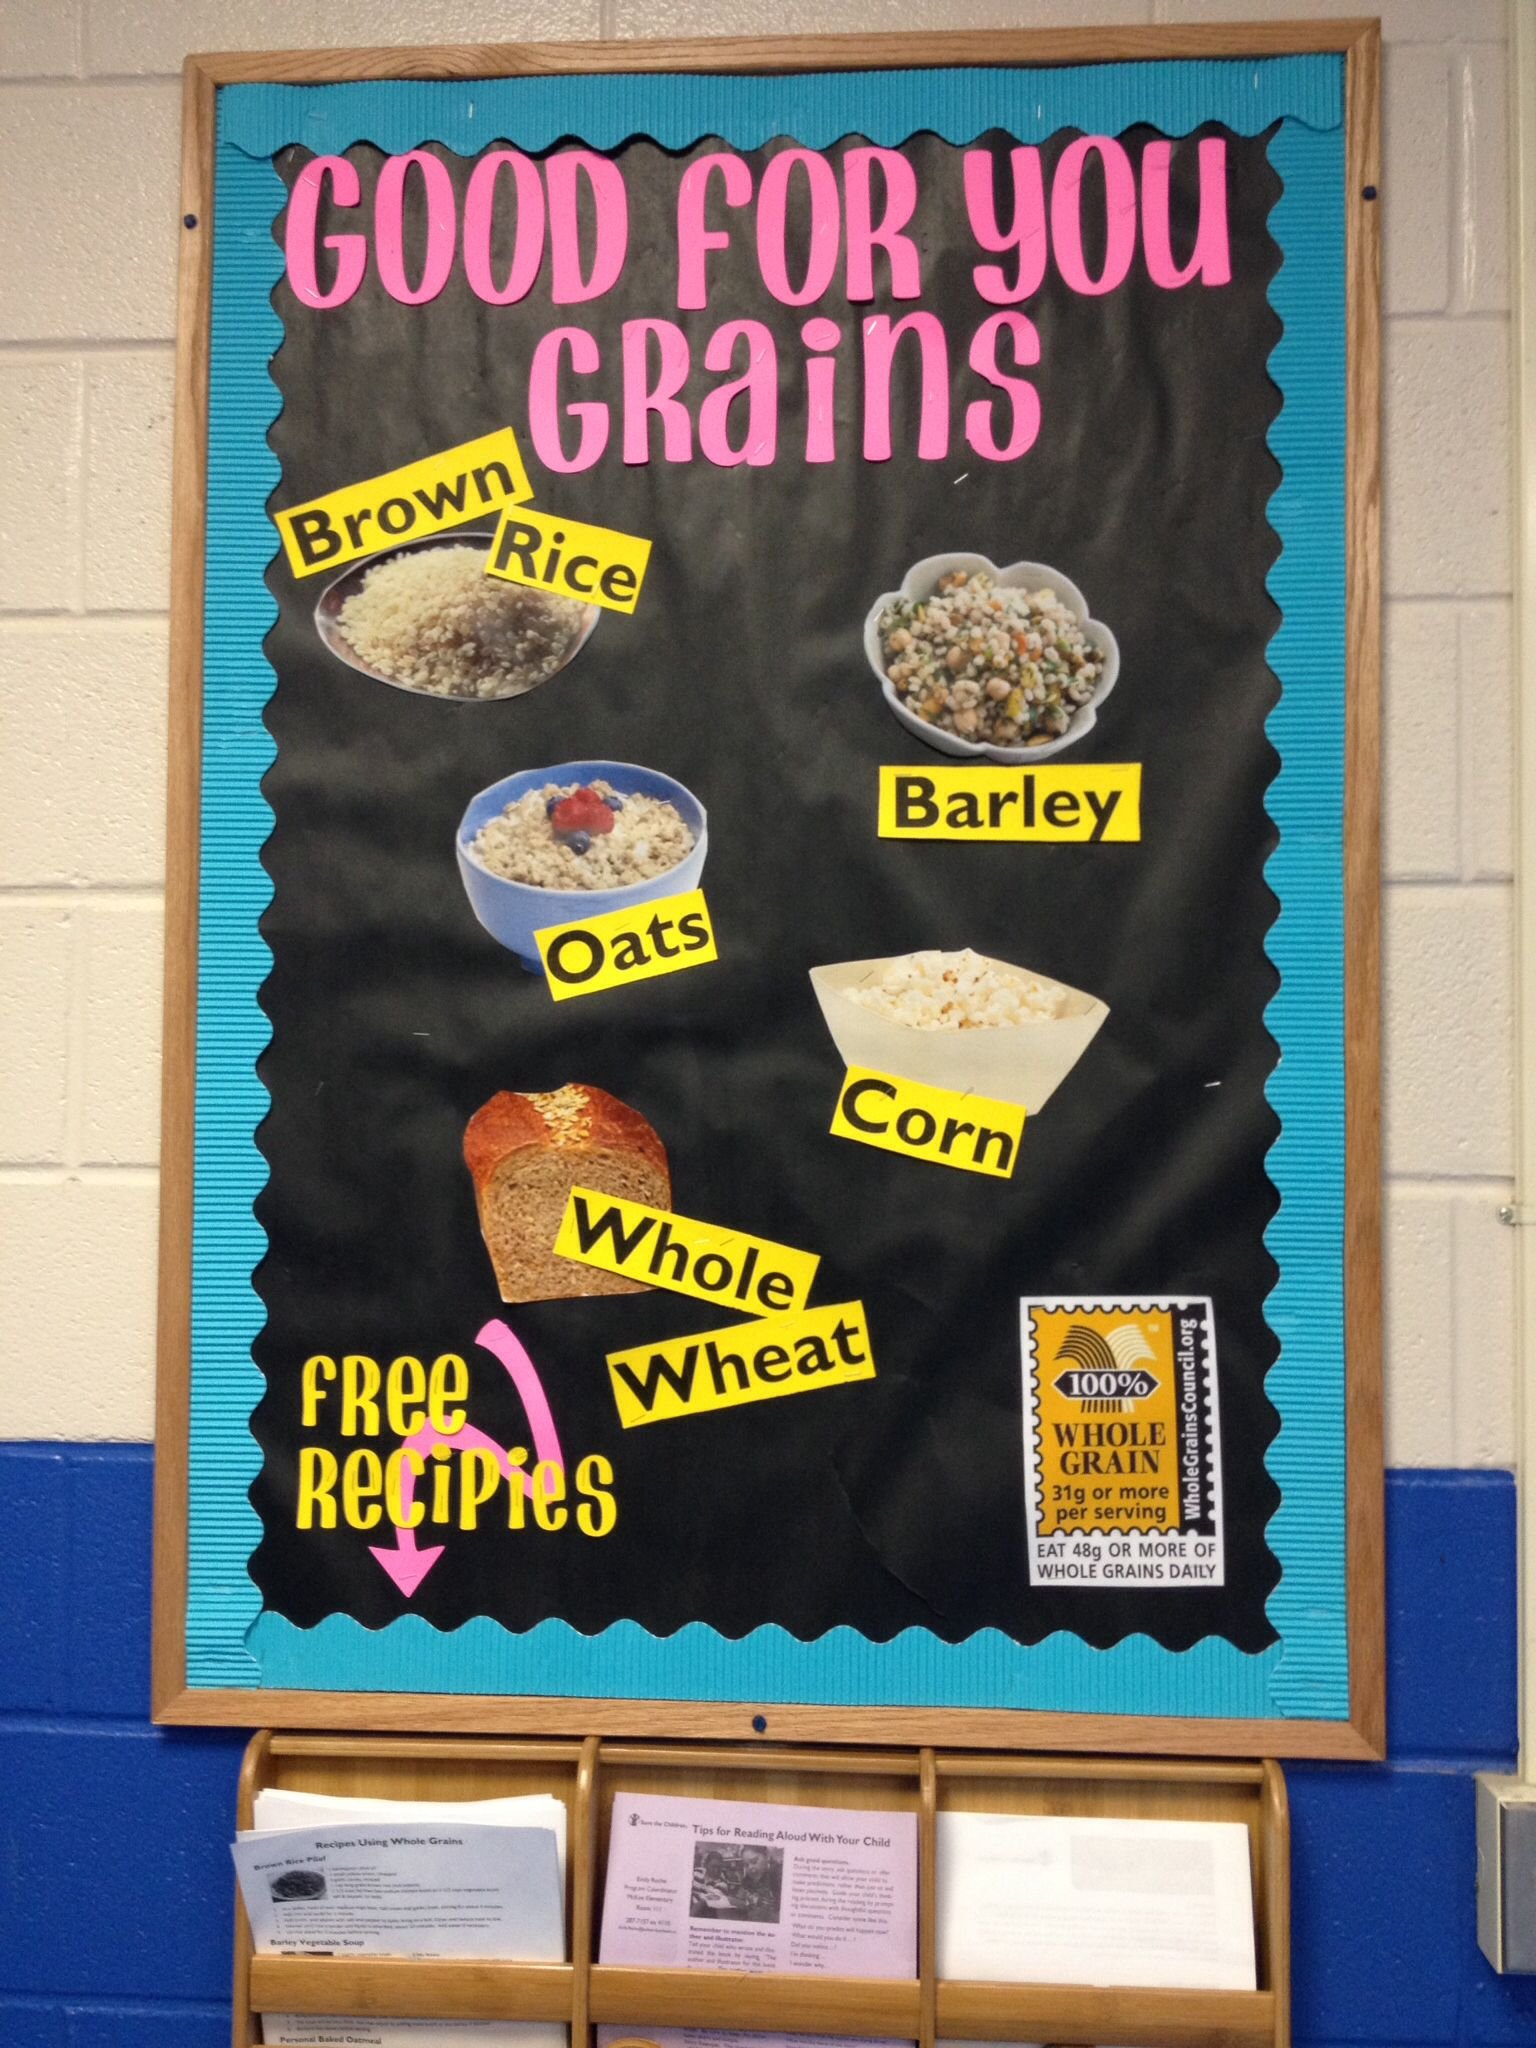 Go green vegetable bulletin board idea myclassroomideas com - Good For You Grains Nutrition Bulletin Board About Whole Grains Elementary Health And Healthy Choices